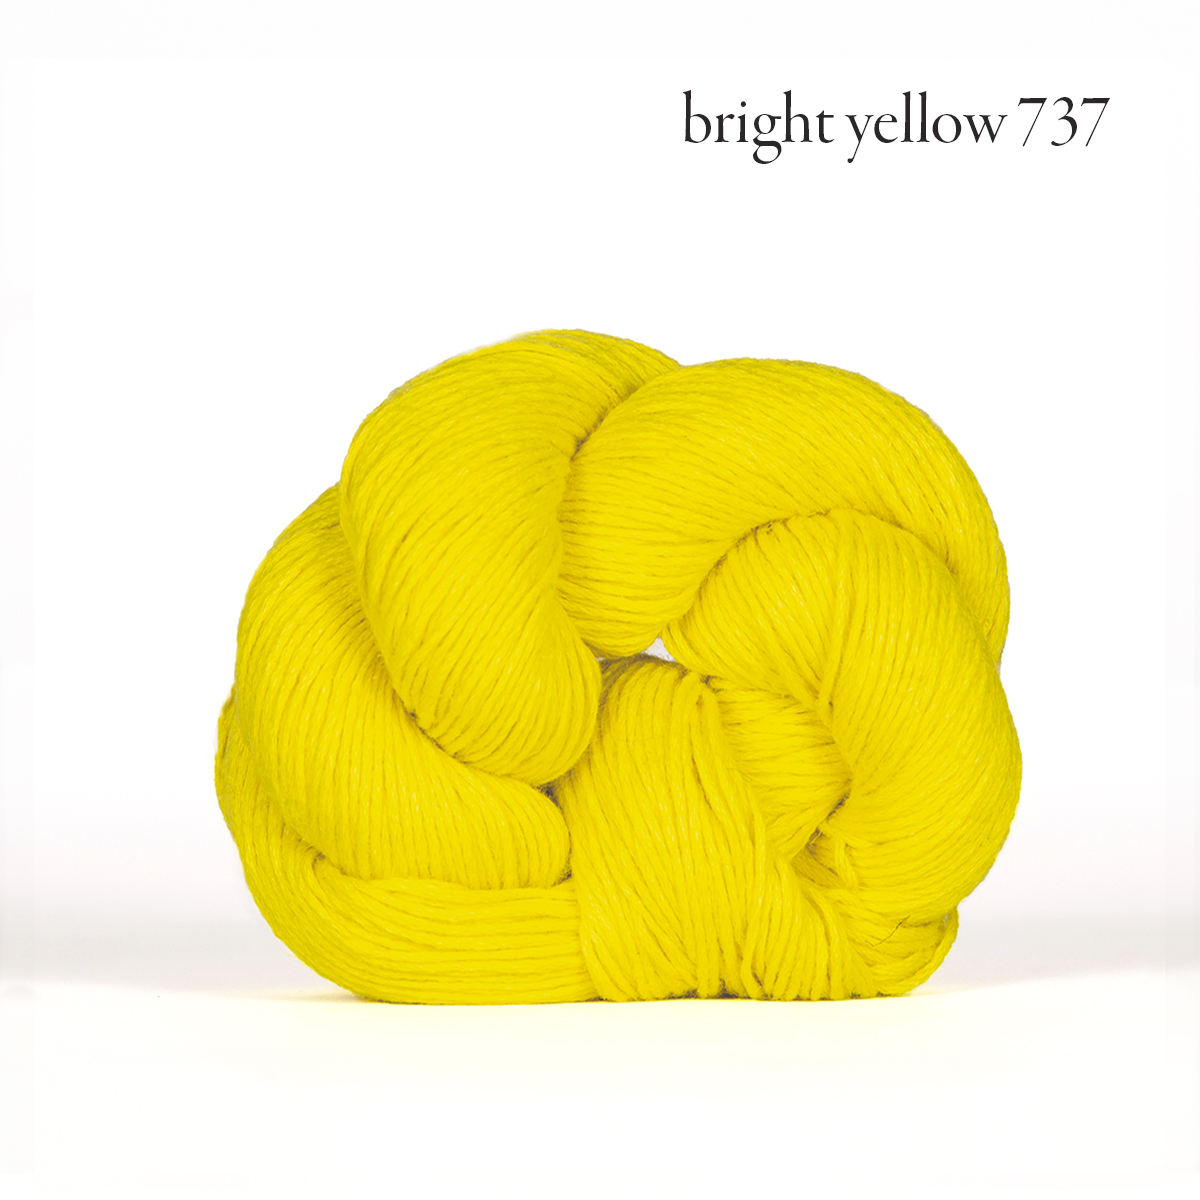 mojave bright yellow 737.jpg